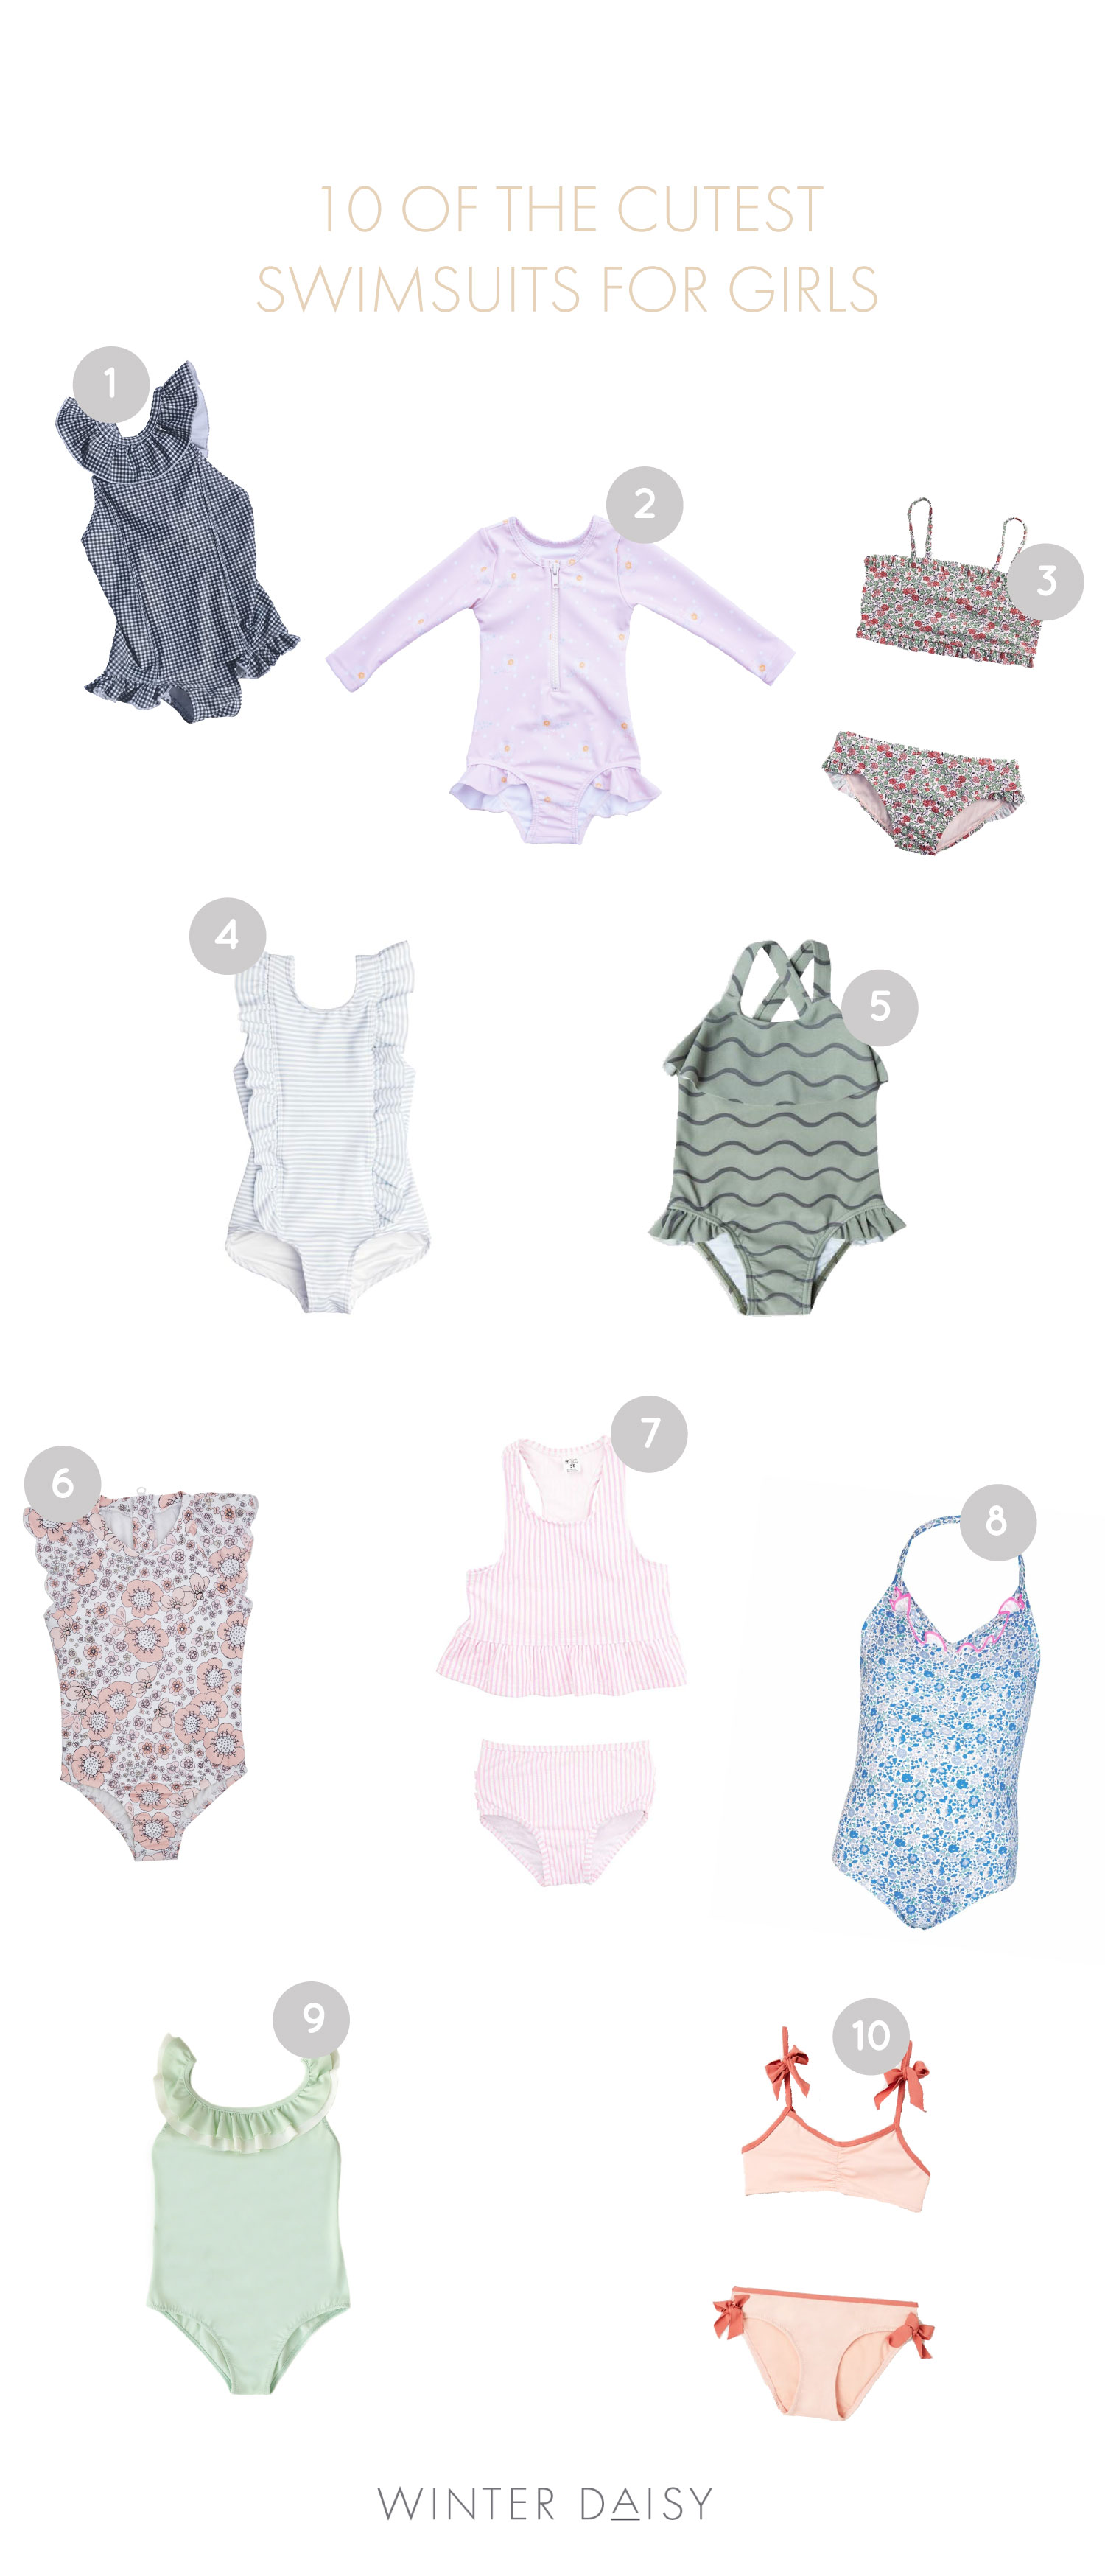 10 of the cutest summer swimsuits for girls